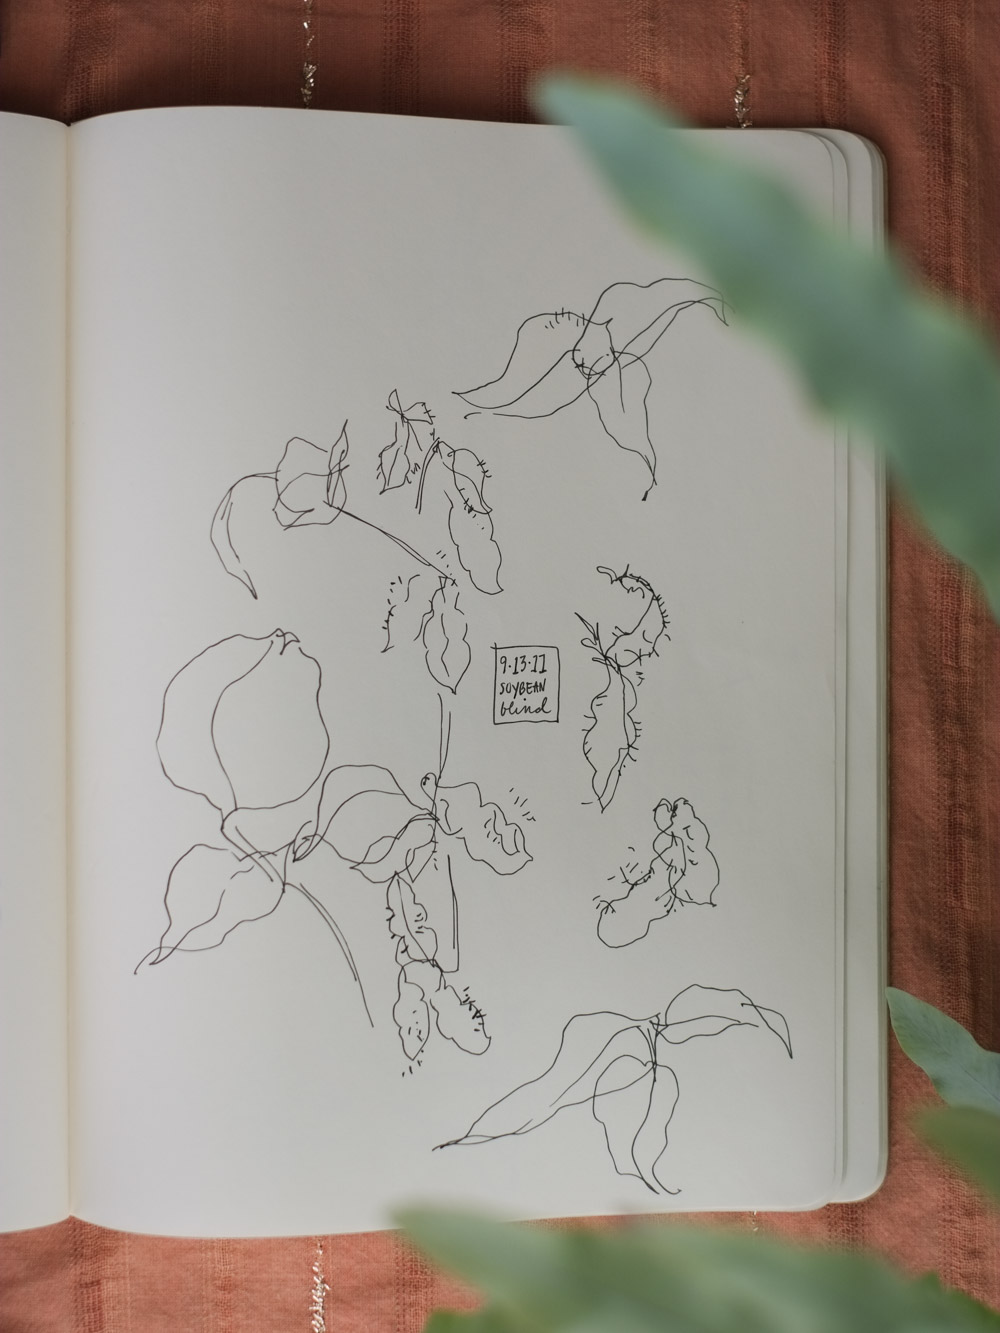 Erin_Ellis_daily_botanical_blind_drawings_sept_2017.jpg-15.jpg